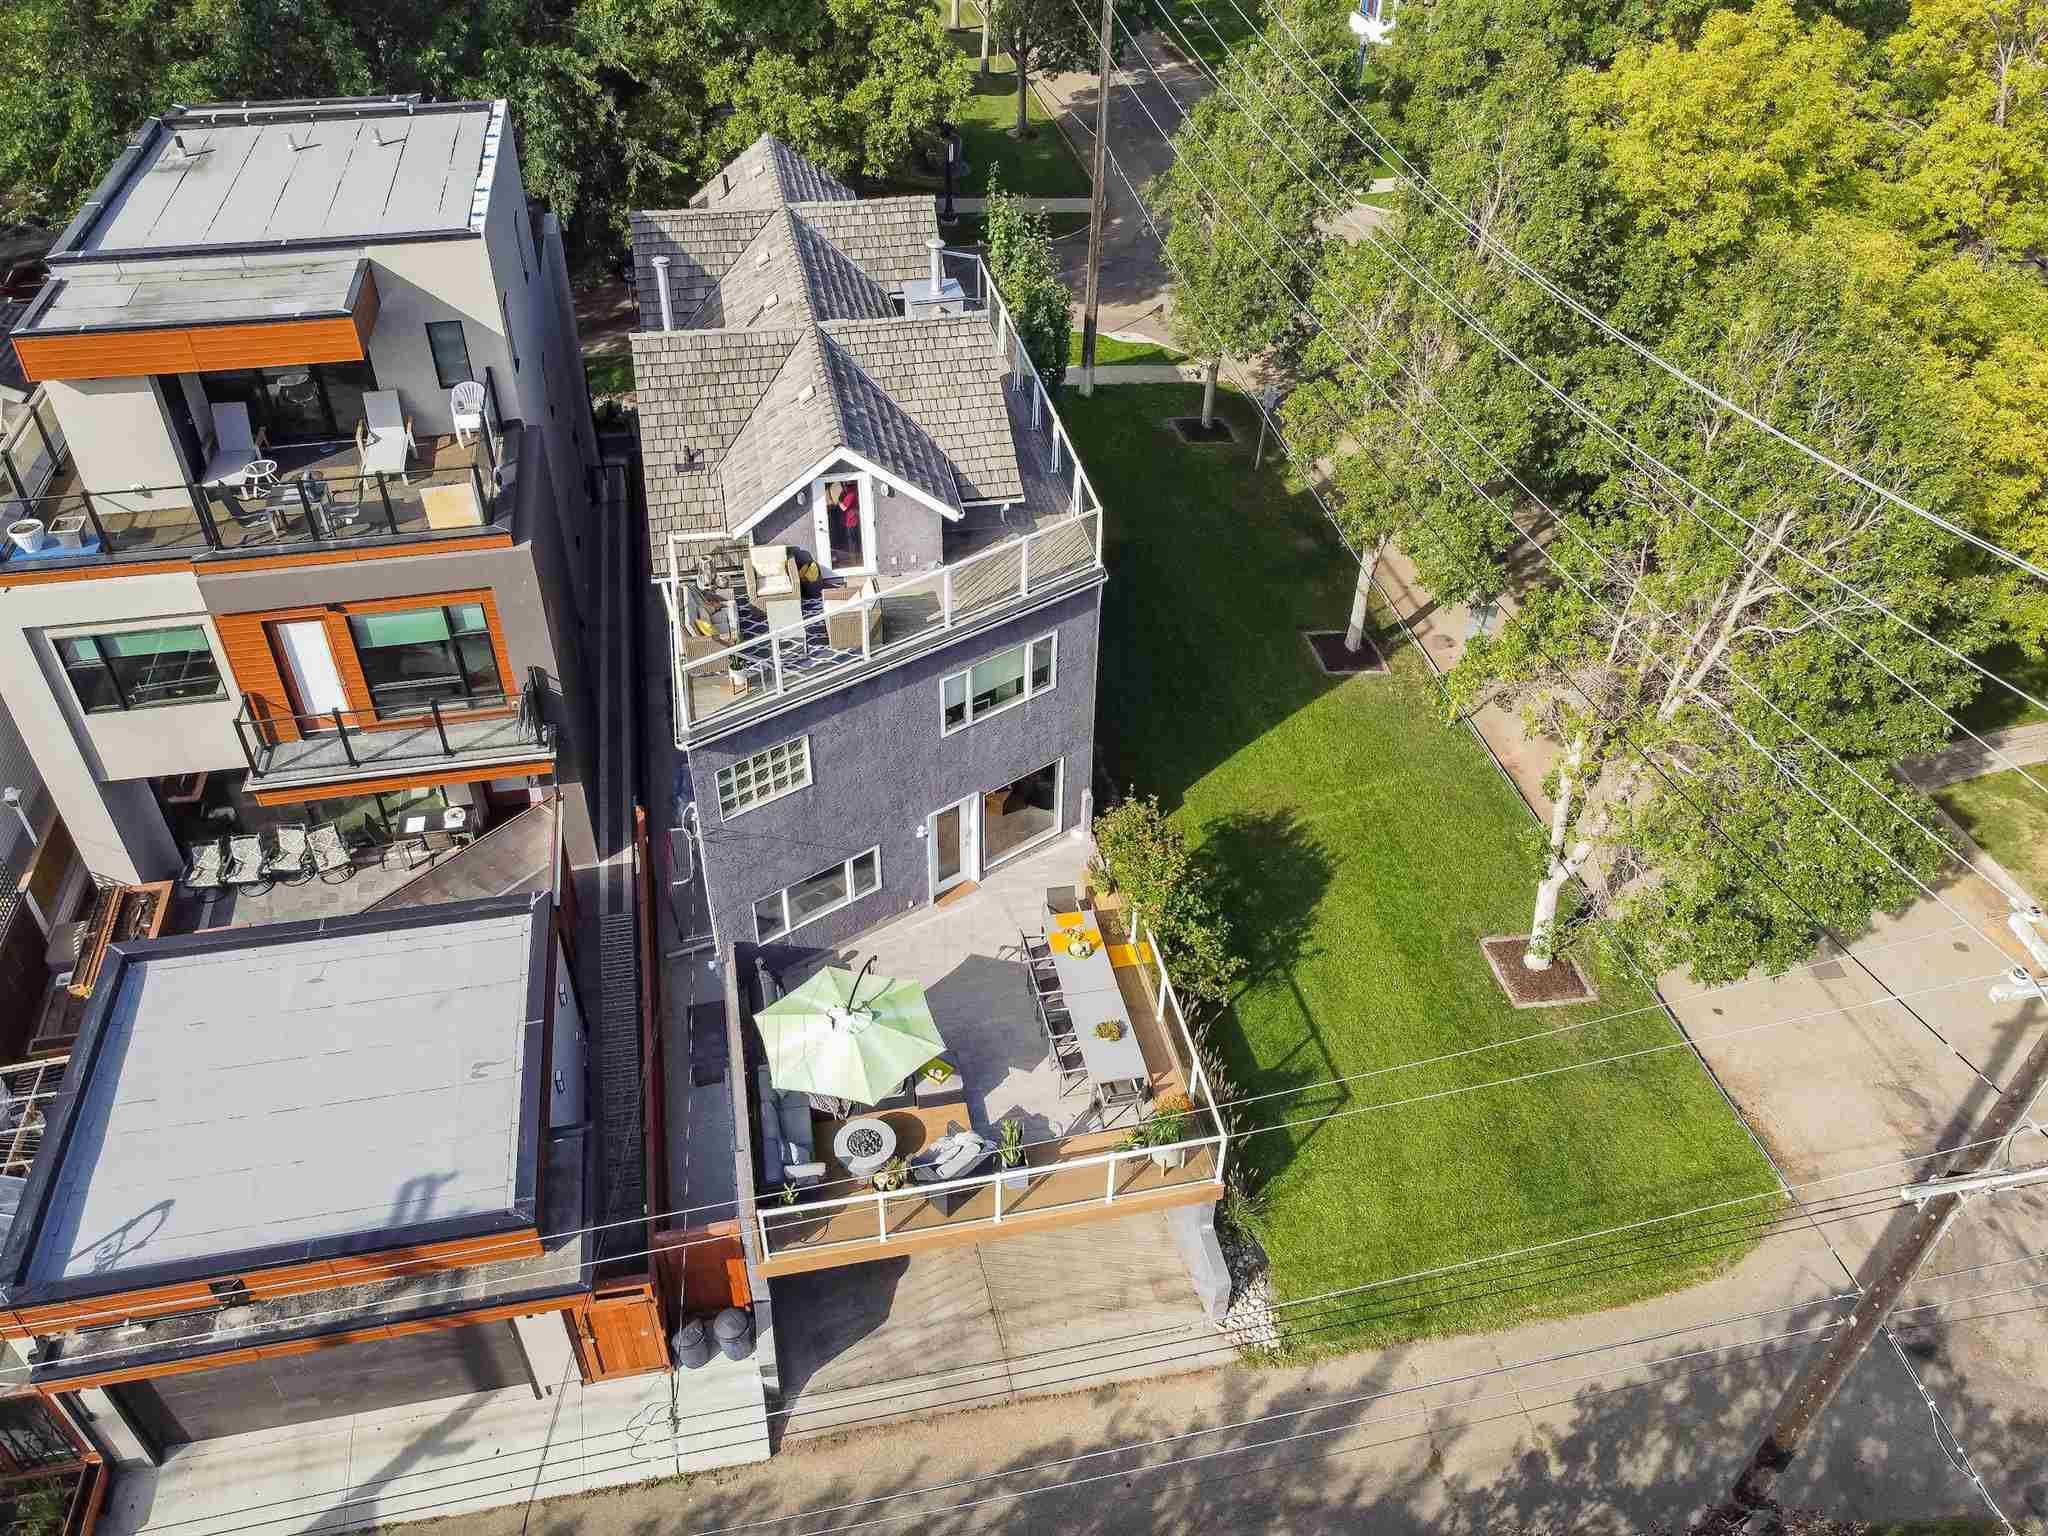 Main Photo: 9447 100A Street in Edmonton: Zone 12 House for sale : MLS®# E4252347